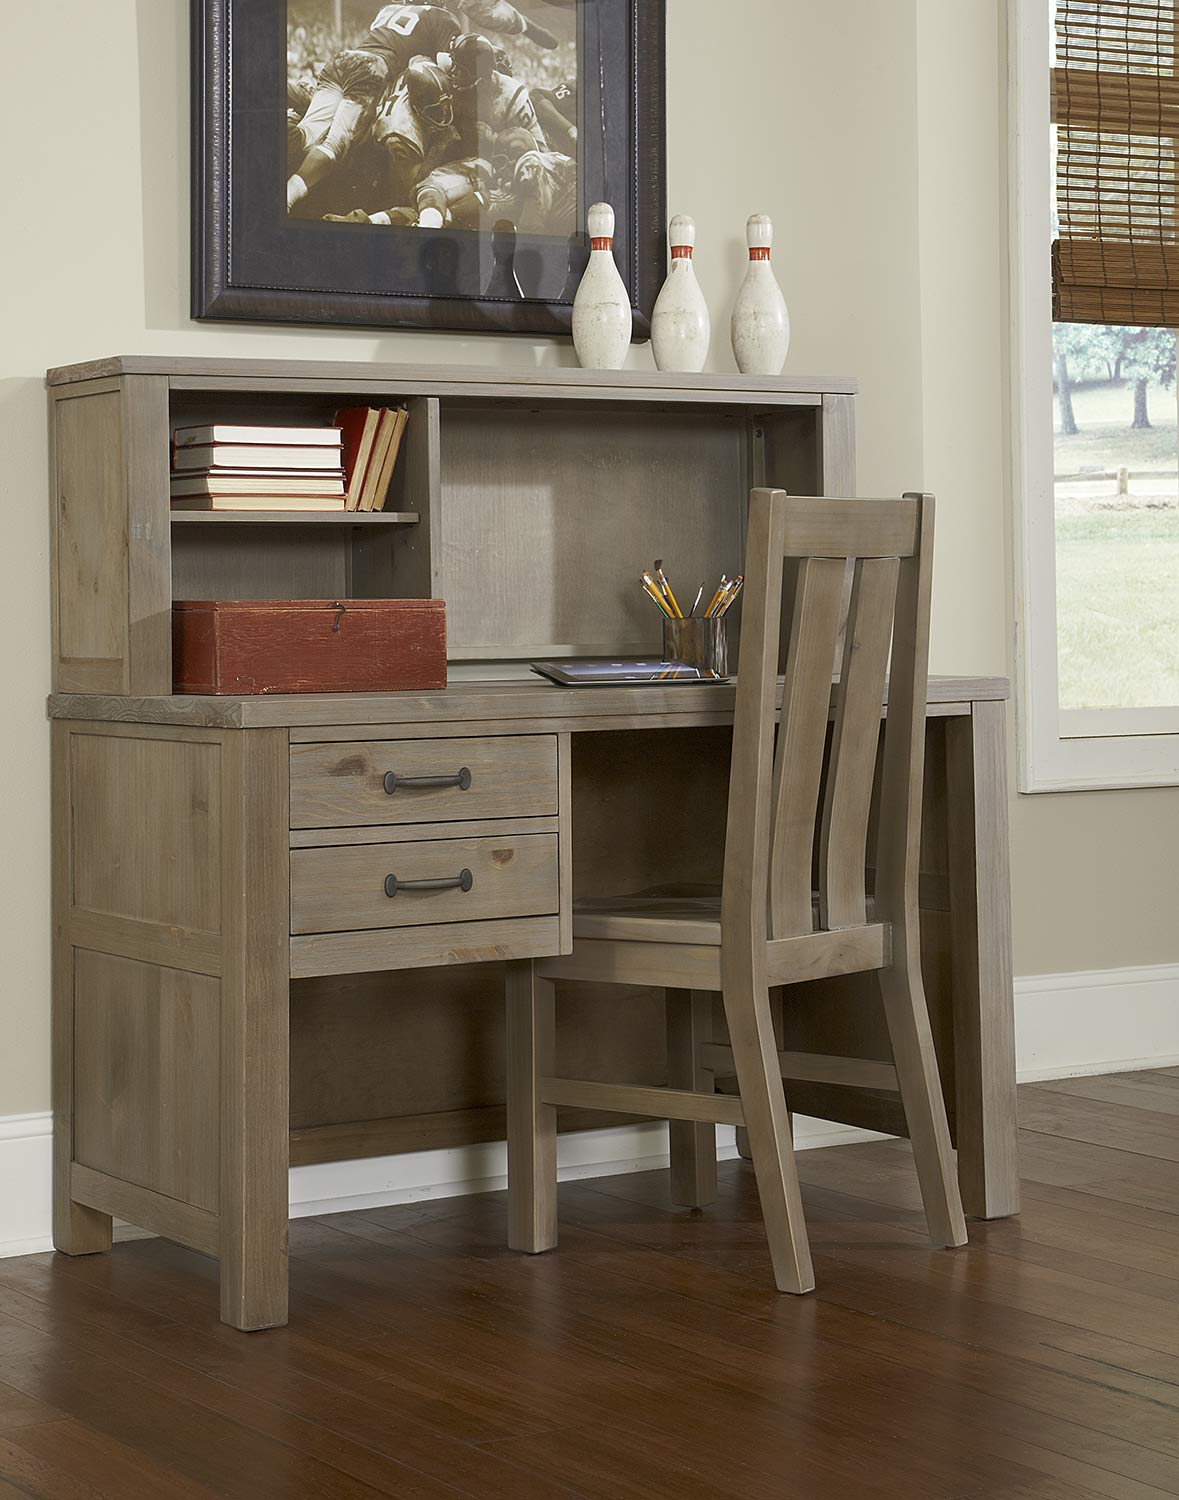 NE Kids Highlands Desk with Hutch And Chair - Driftwood